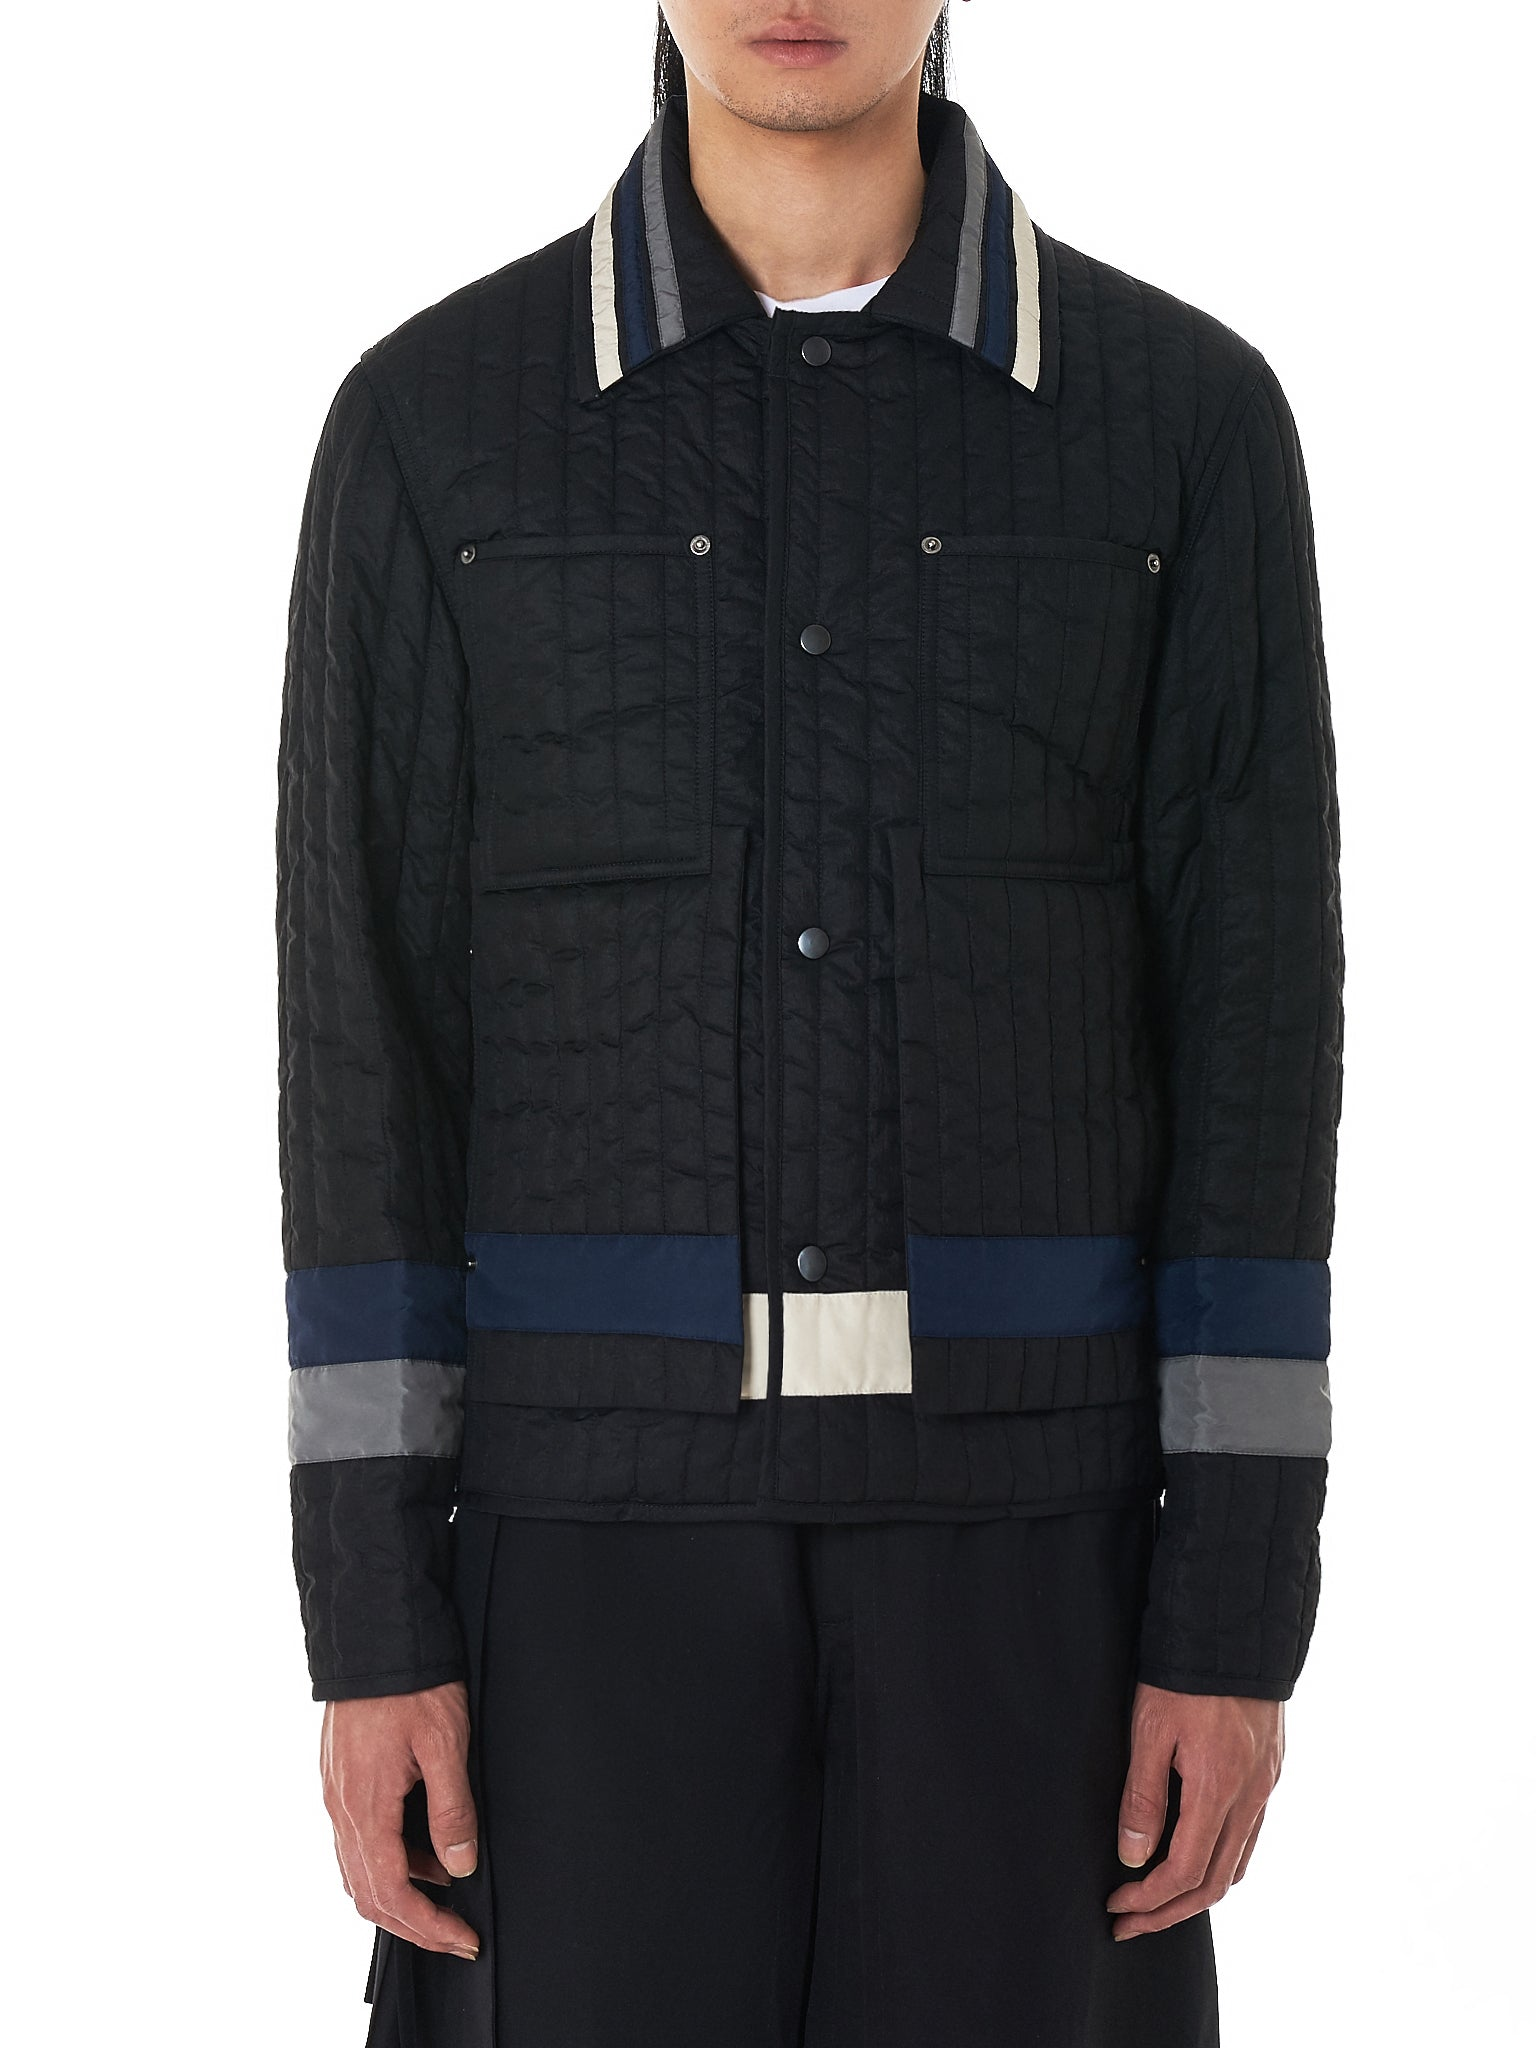 Craig Green Work Jacket - Hlorenzo Front